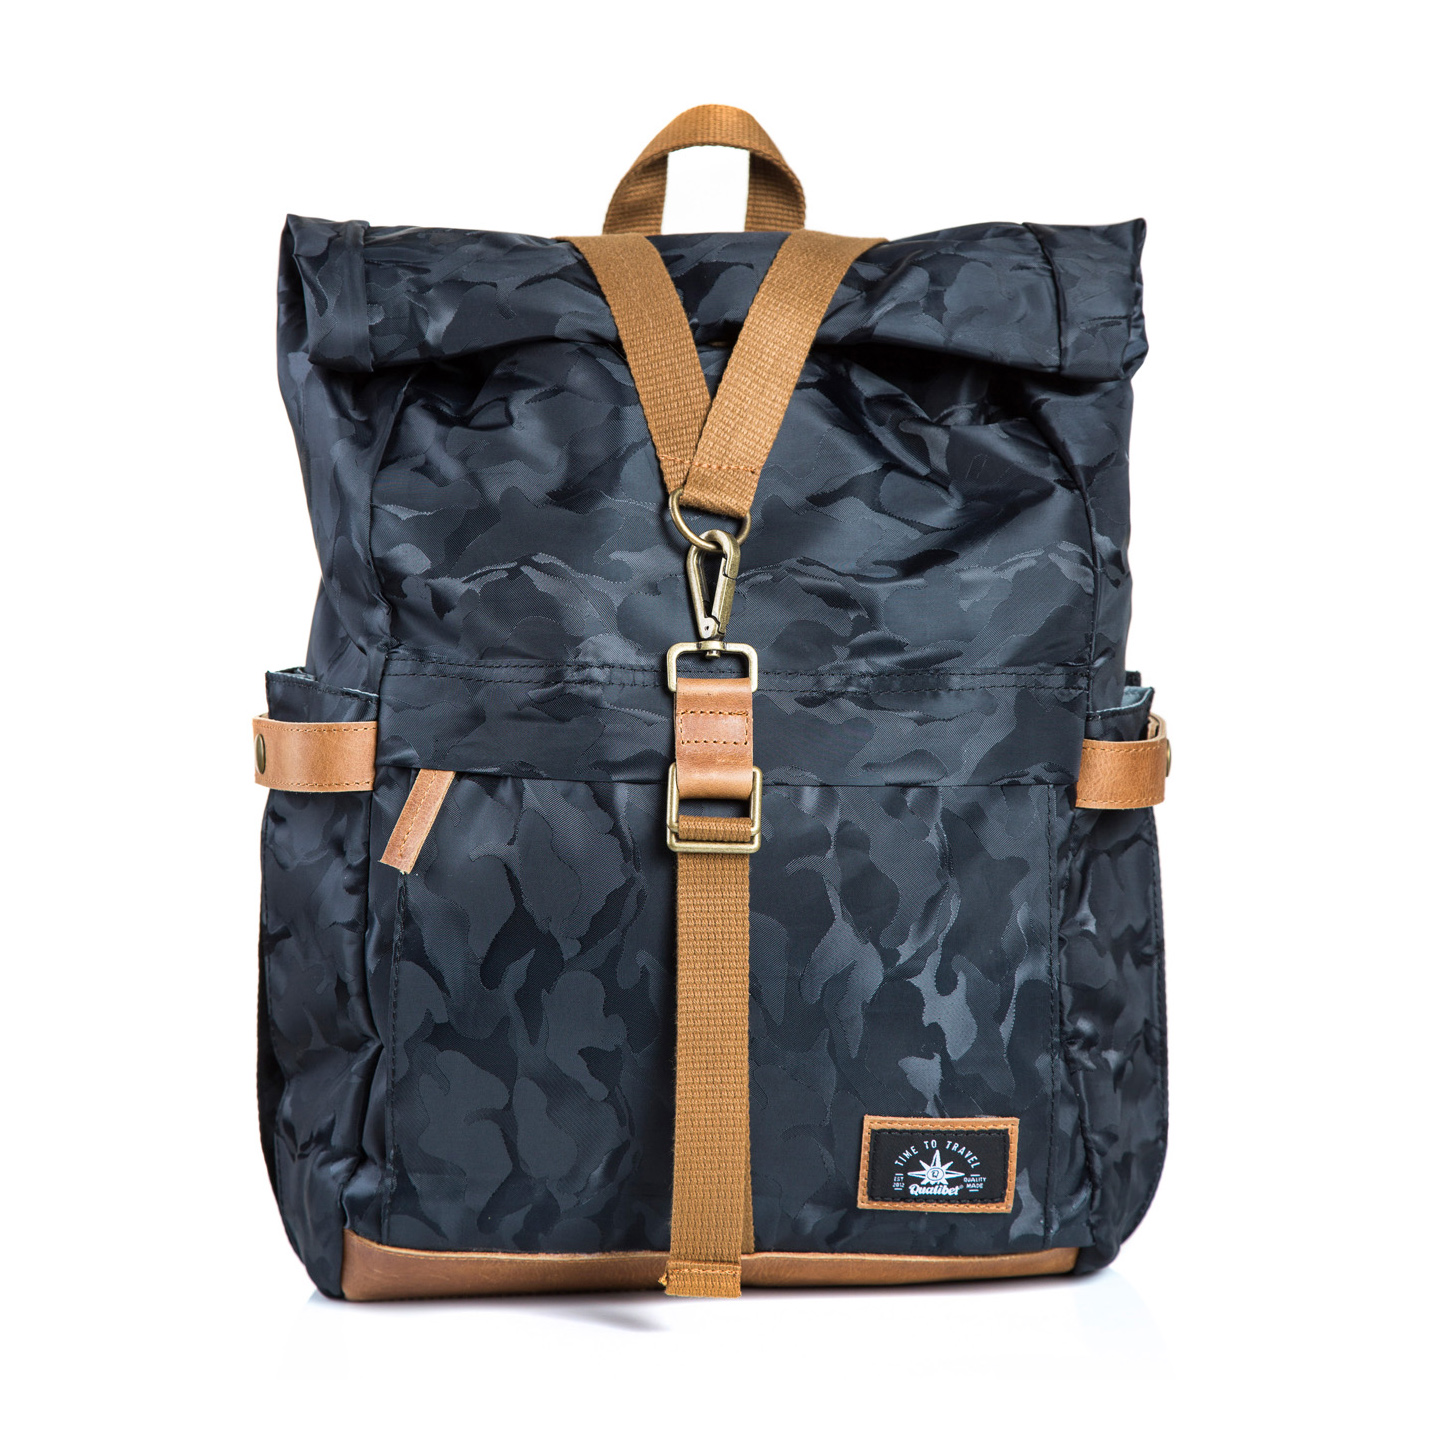 Biker Backpack Camo (Dark)